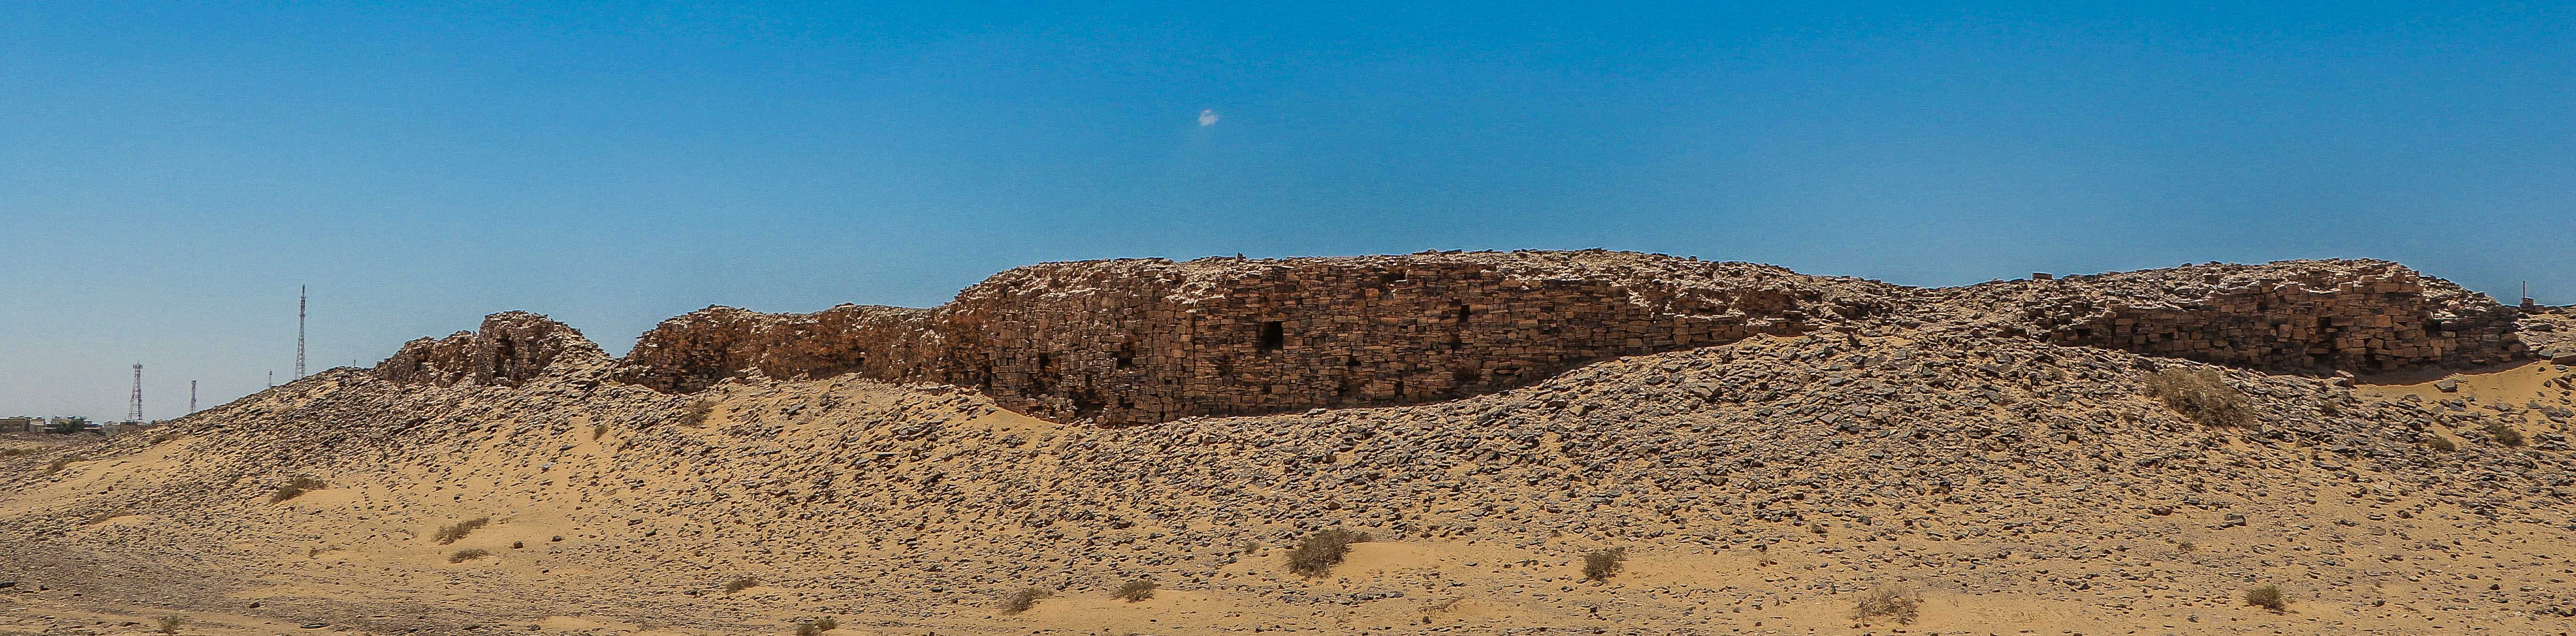 Walls of the ancient city of Tayma (photo: Florent Egal)